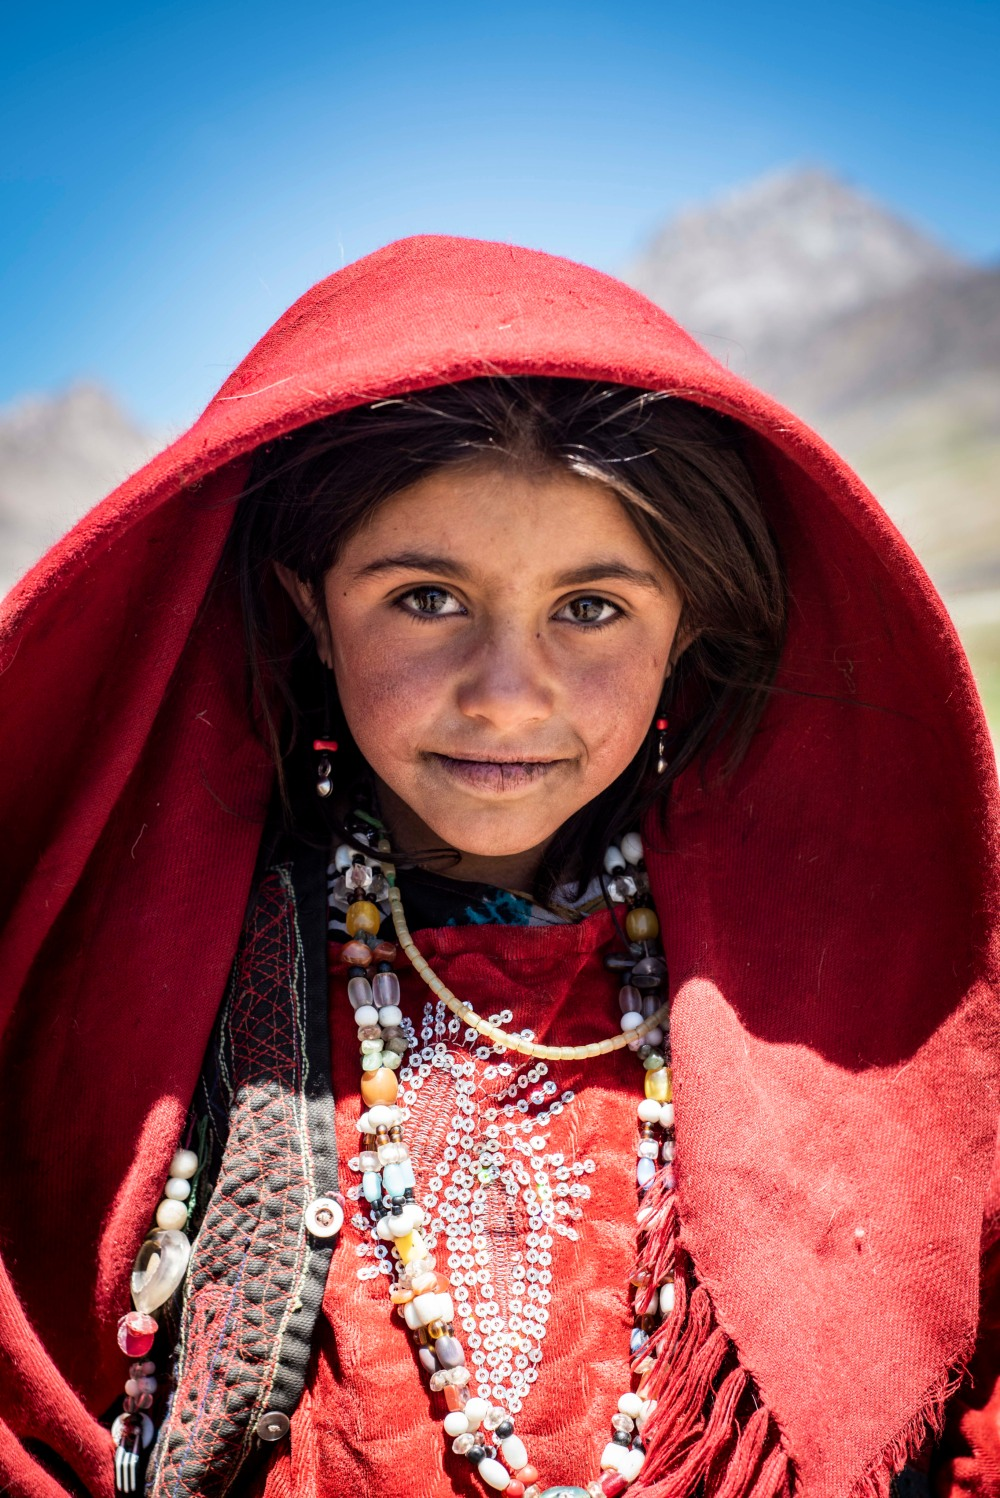 A young girl showcases traditional dress in Afghanistan's Wakhan Corridor